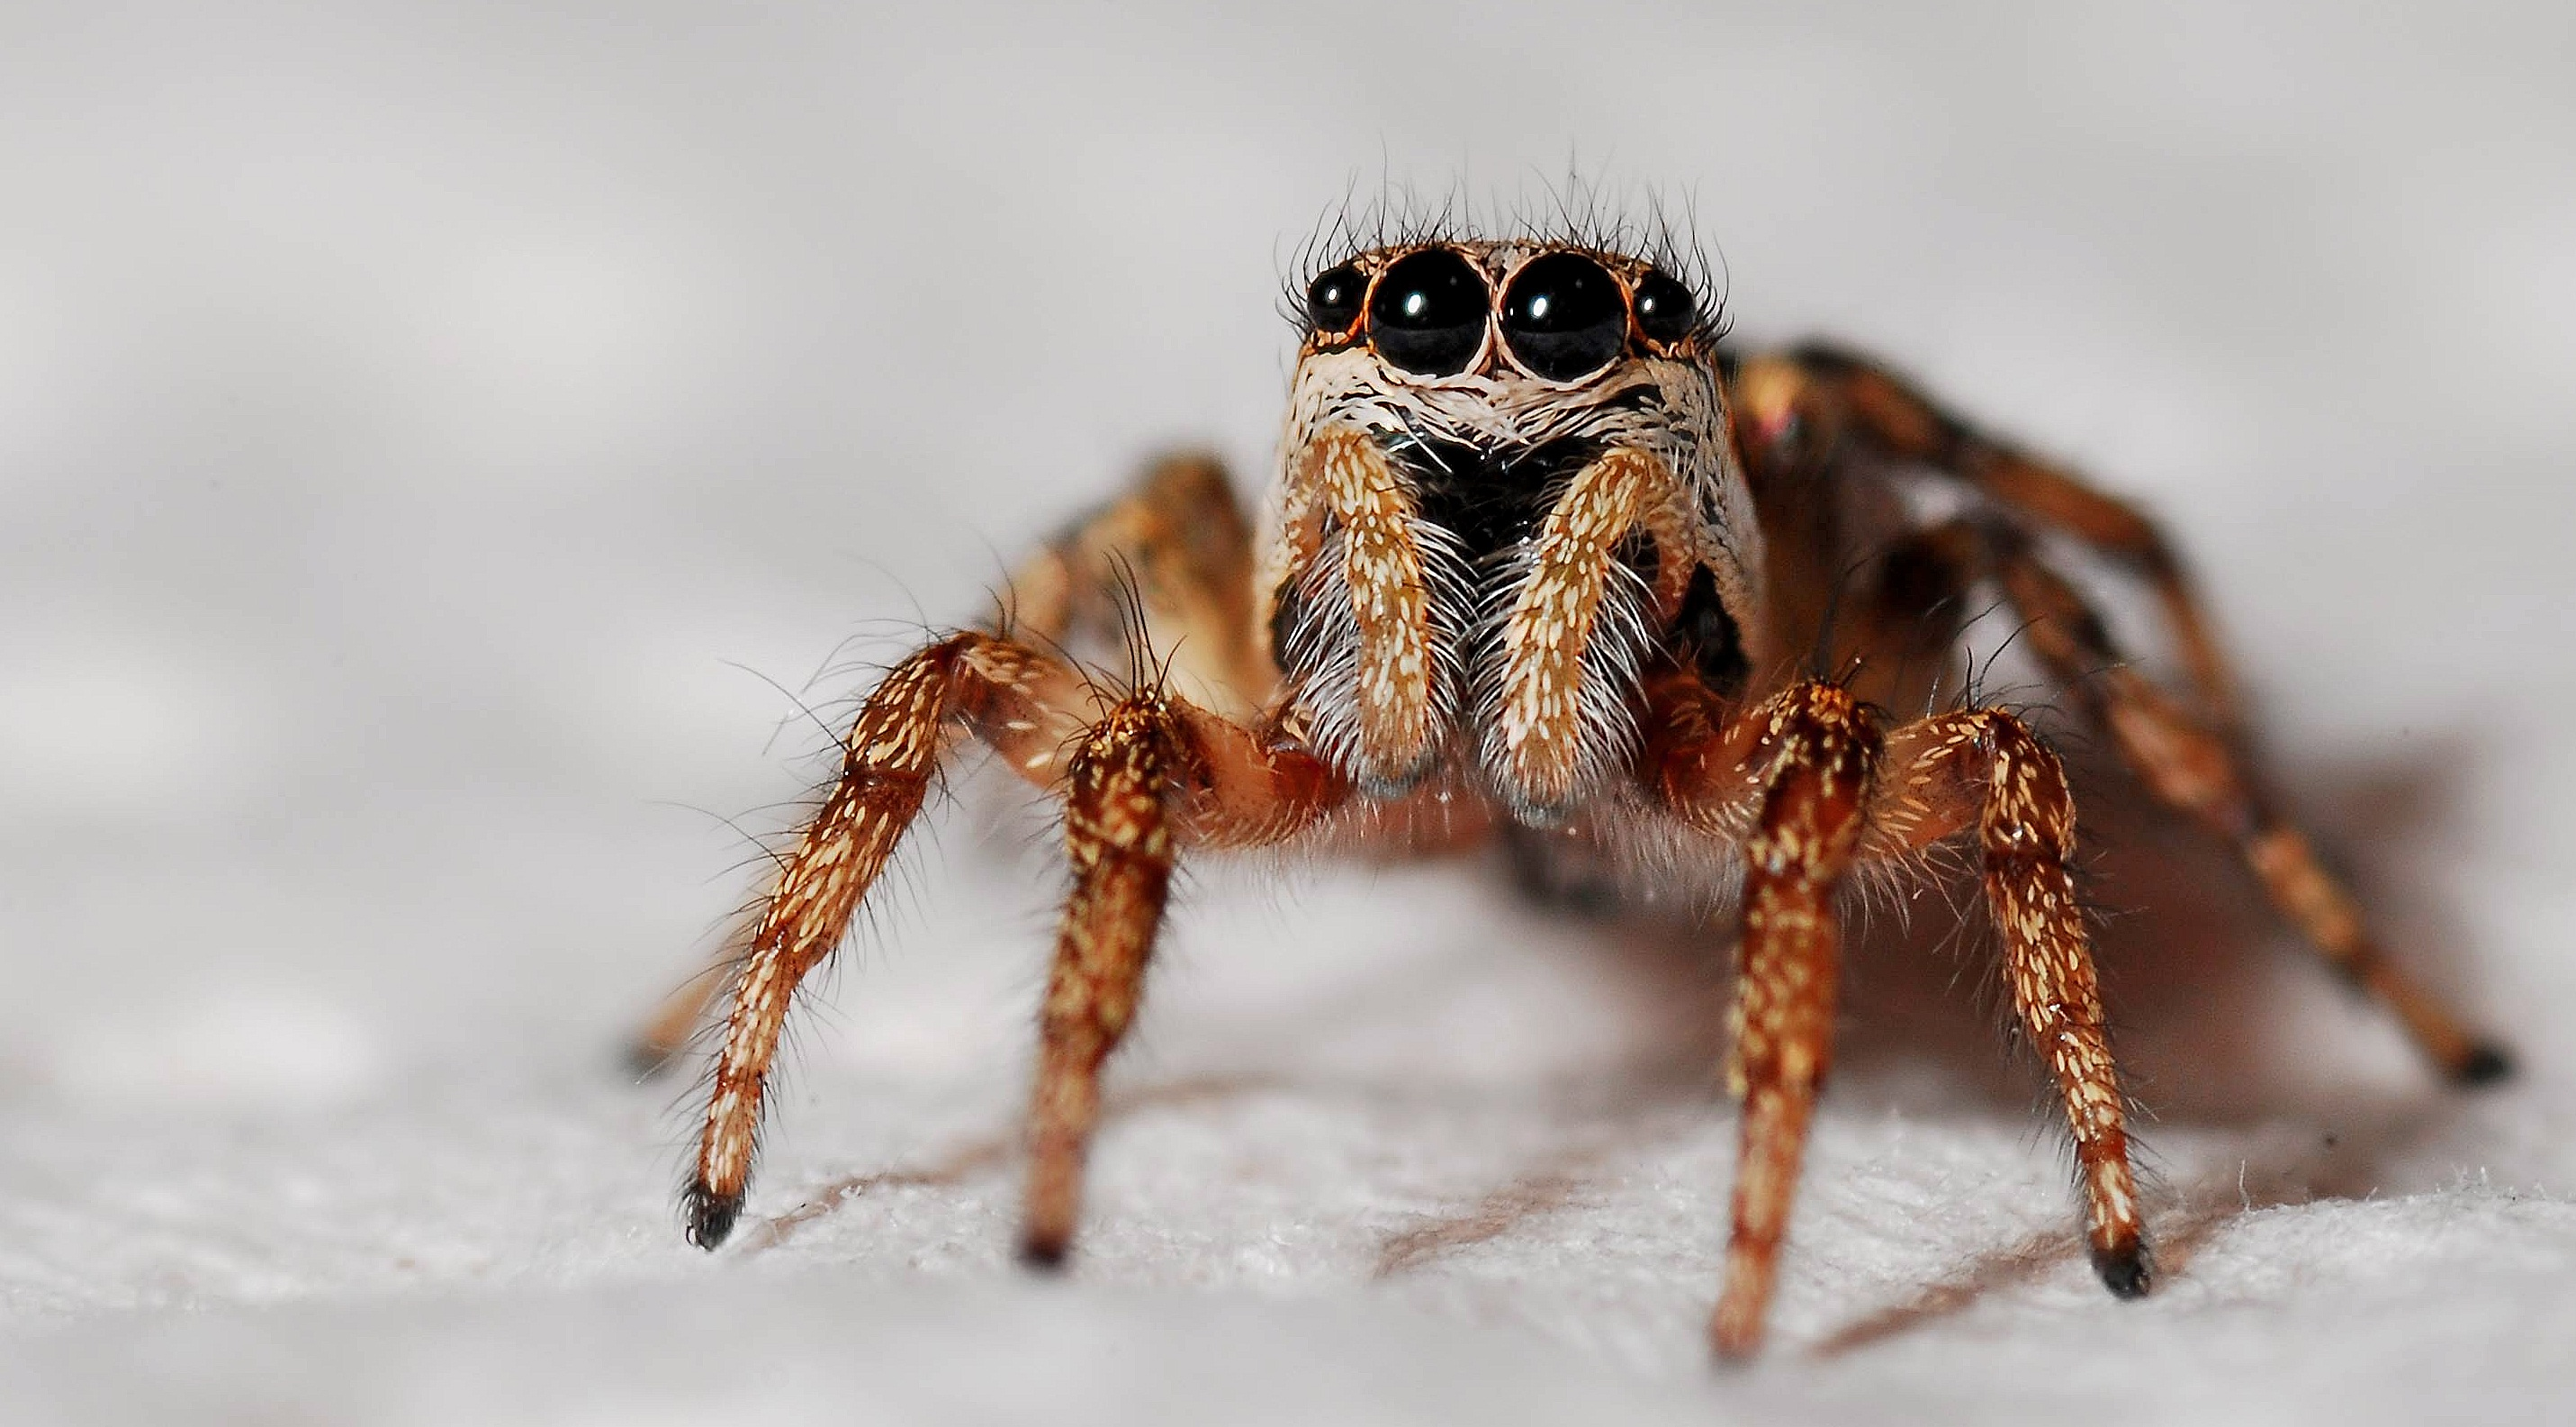 Spider >> Spider Pictures Pexels Free Stock Photos